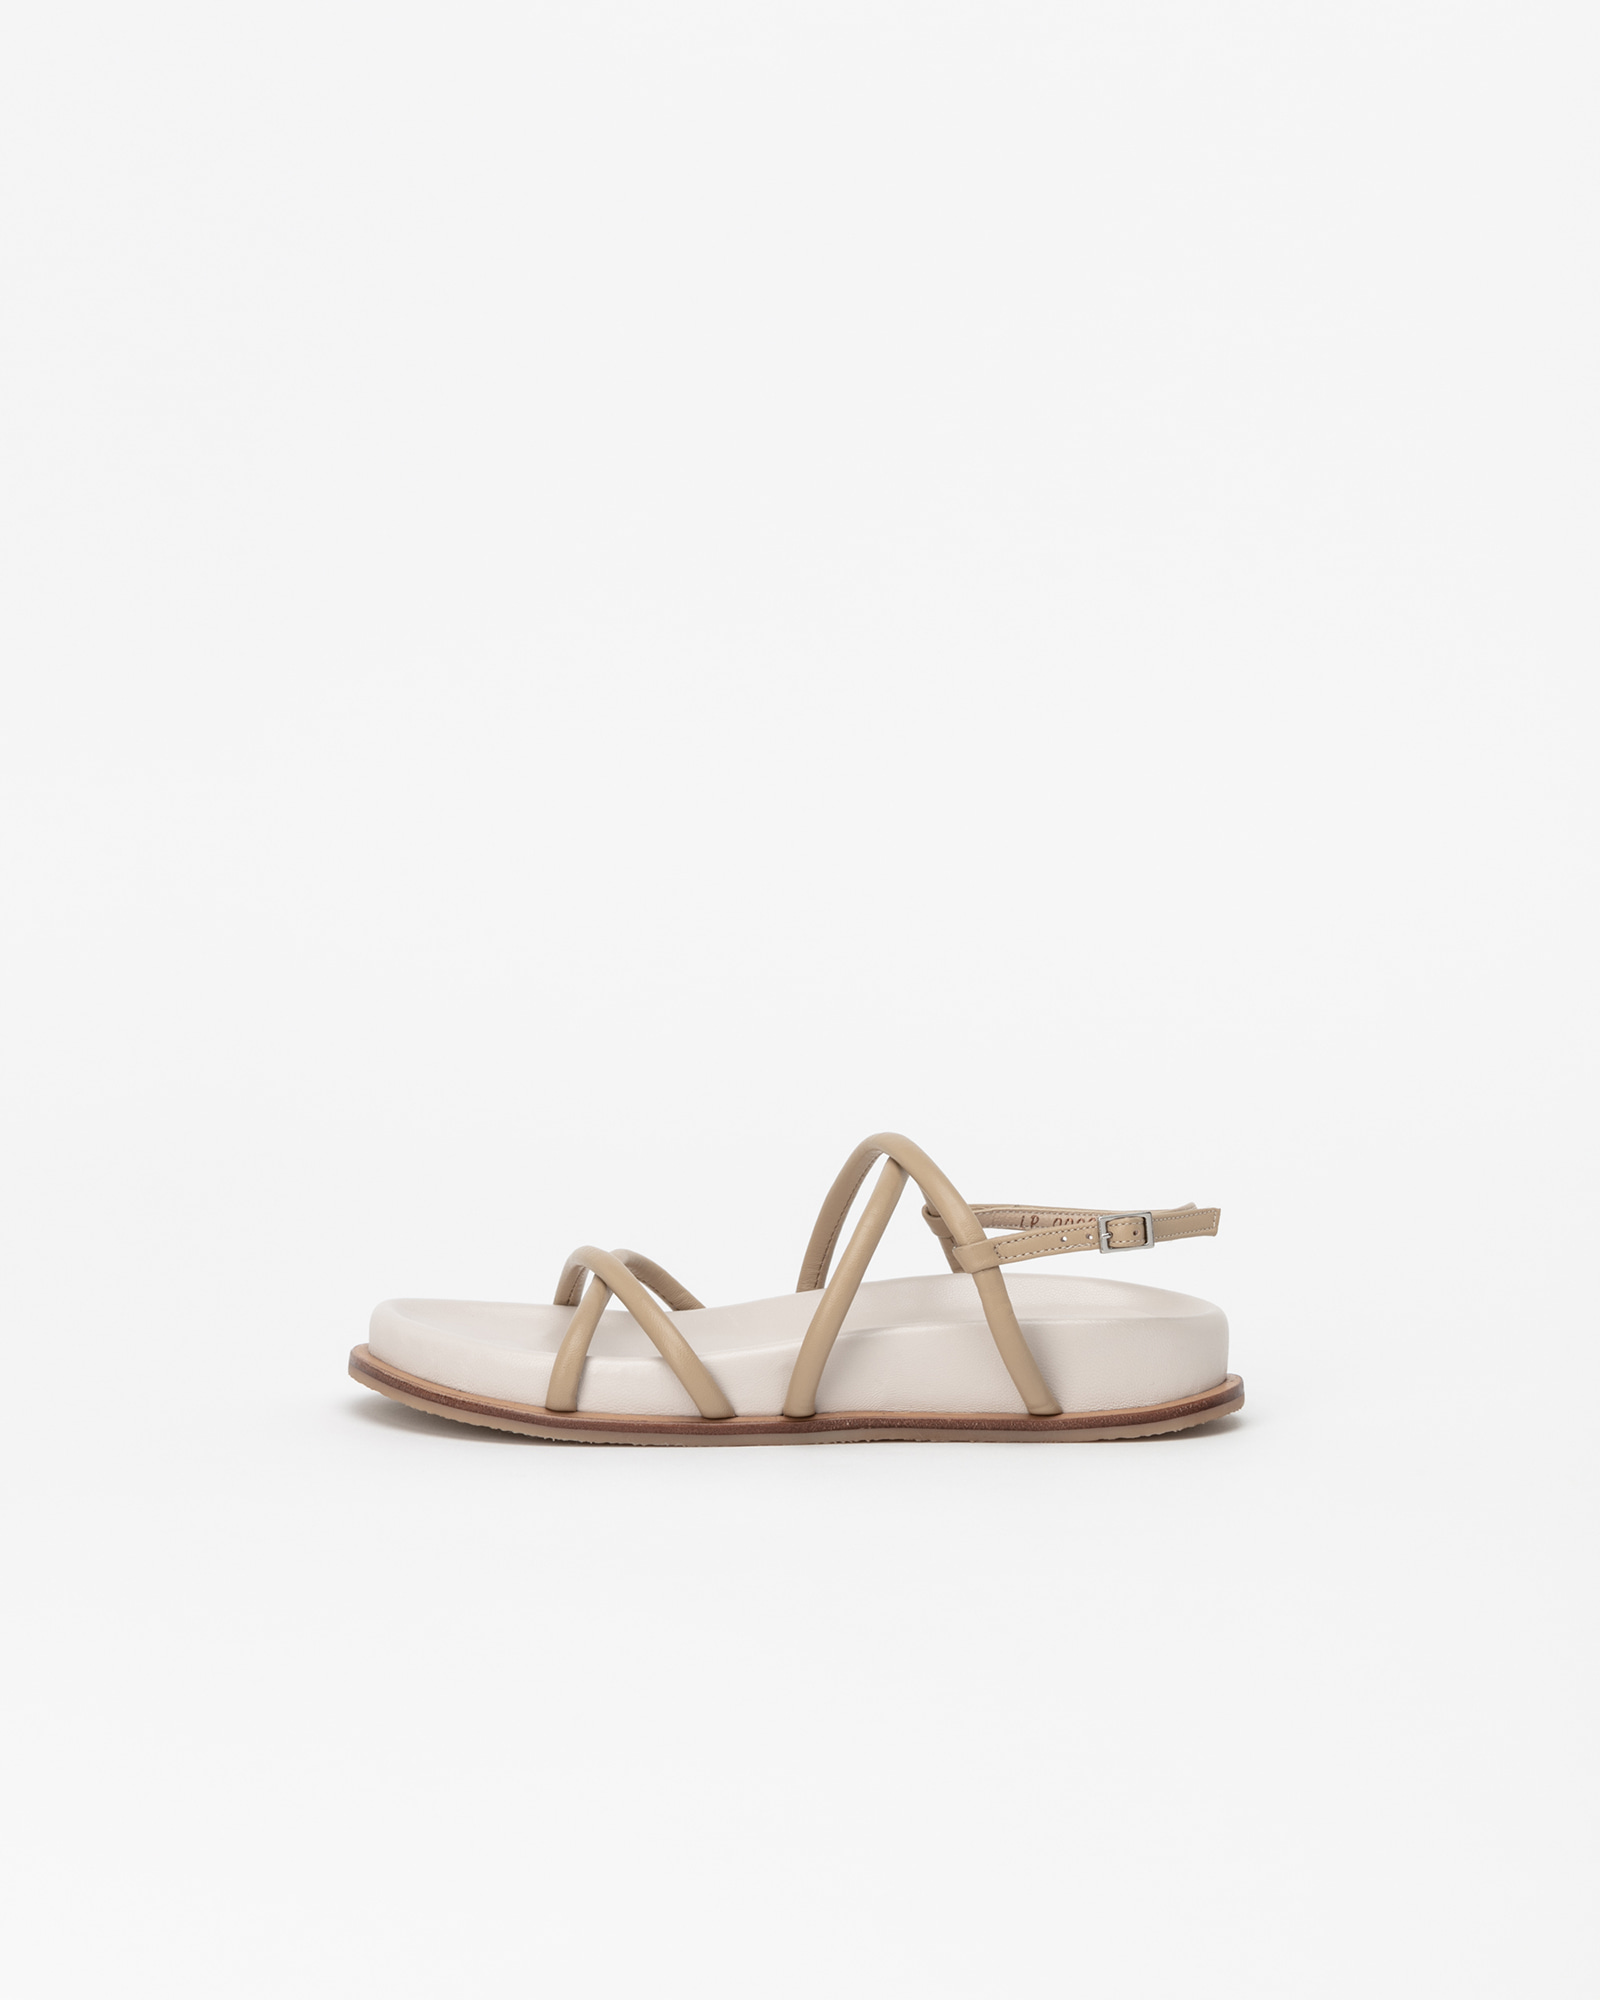 Reiss Footbed Sandals in Yellow Beige